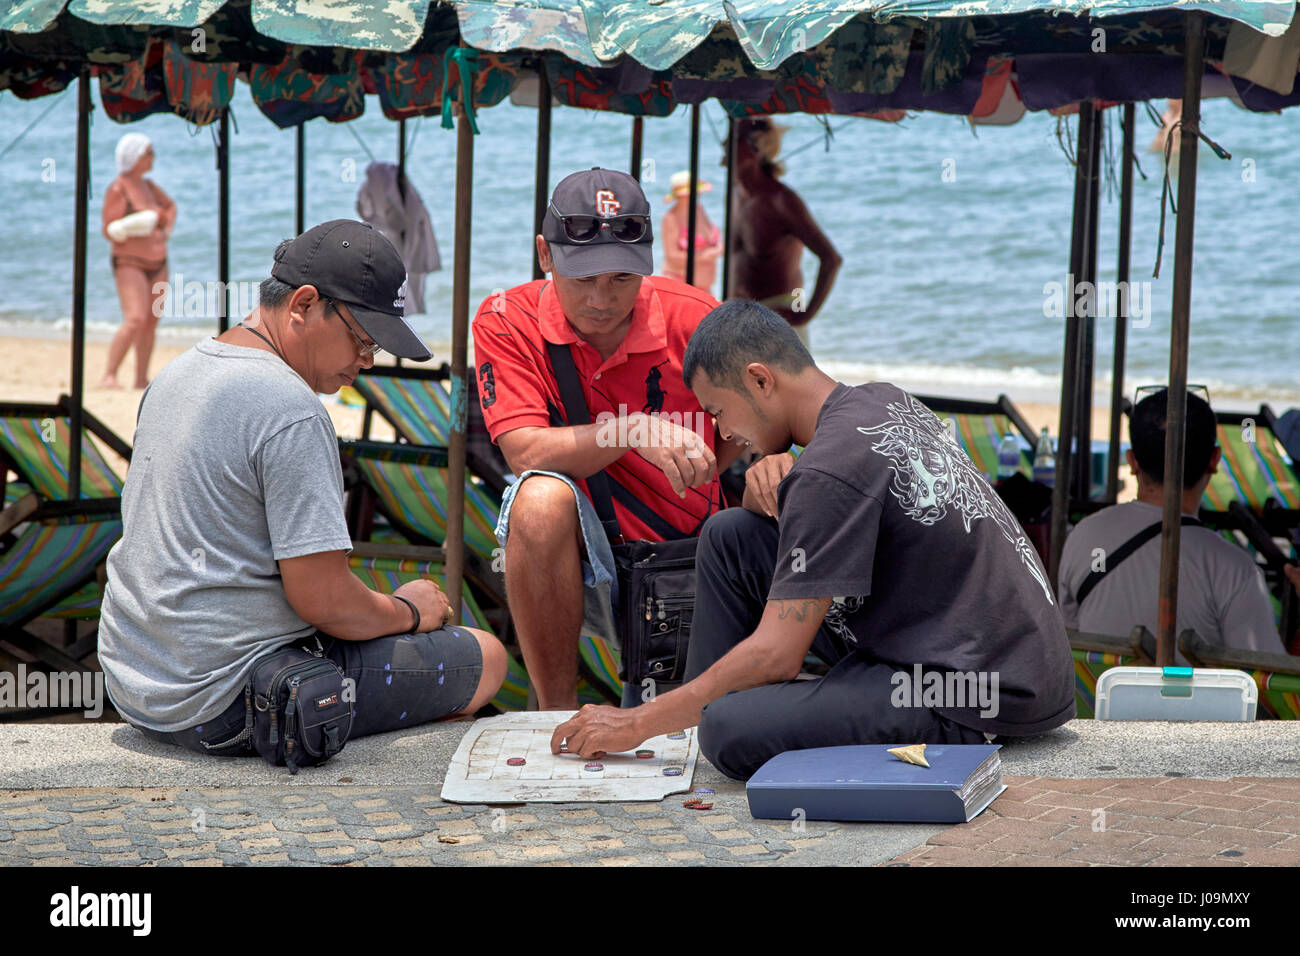 Thailand men playing draughts or checkers using a paper board and bottle tops as pieces. Stock Photo